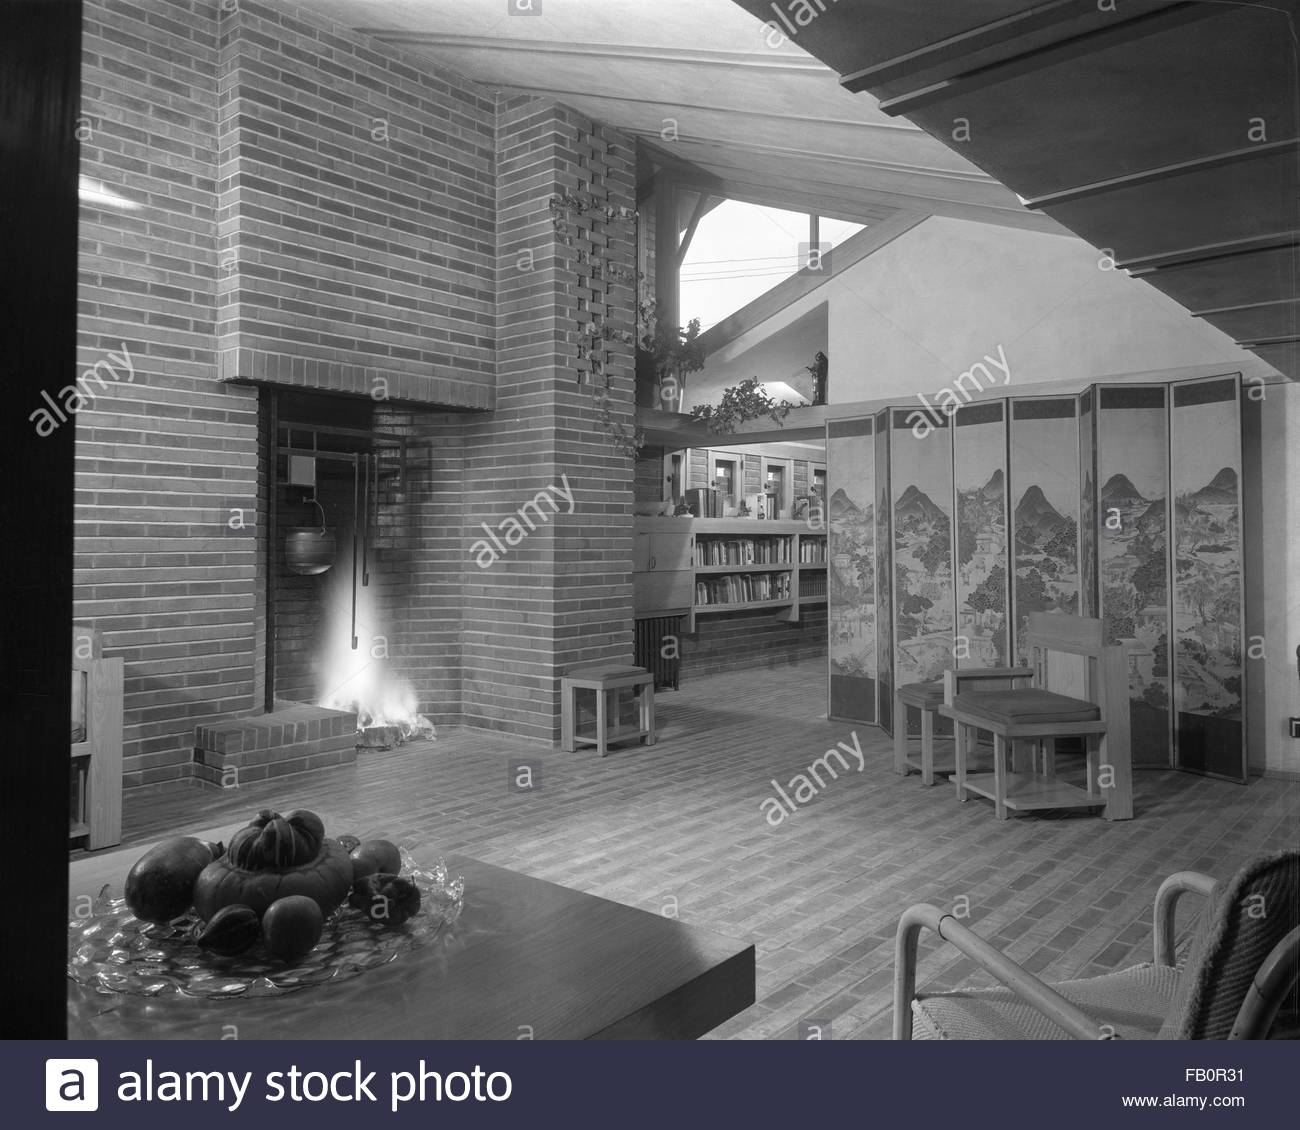 Malcom E. Willey residence in Minneapolis (Minn.), 1937 Dec. Living room with brick fireplace and Japanese screen - Stock Image